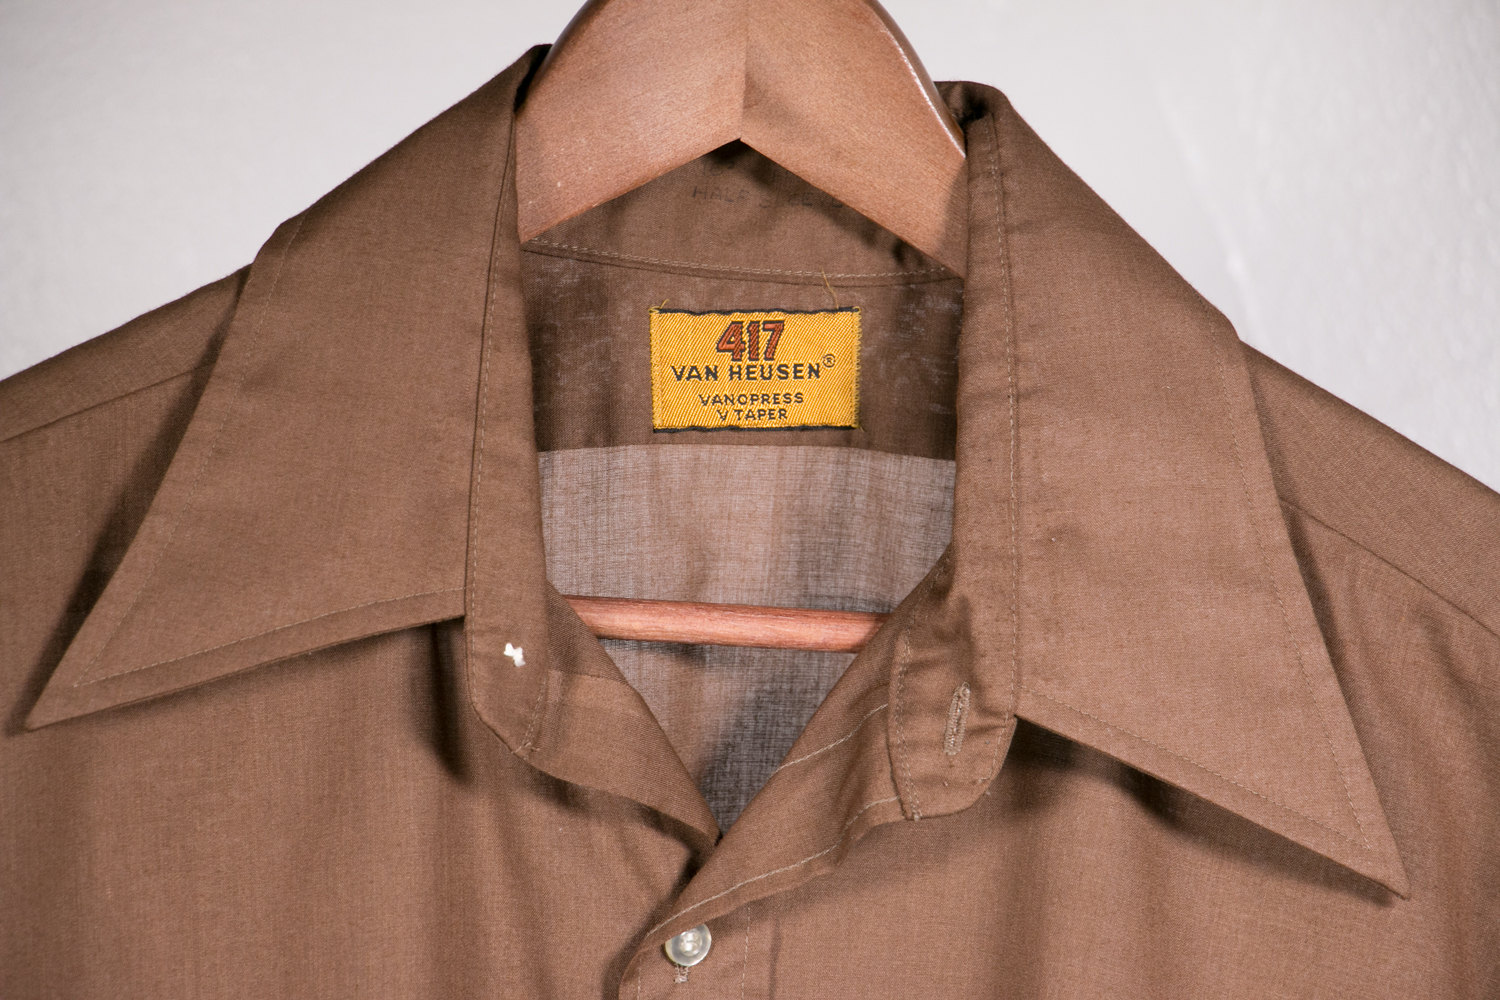 "Vintage 1970's Van Heusen 417 Brown Short Sleeve Button Up Shirt with Pointed Collar - V Taper - 16.5""- Hipster, Retro, Indie, Rocker, Disco"